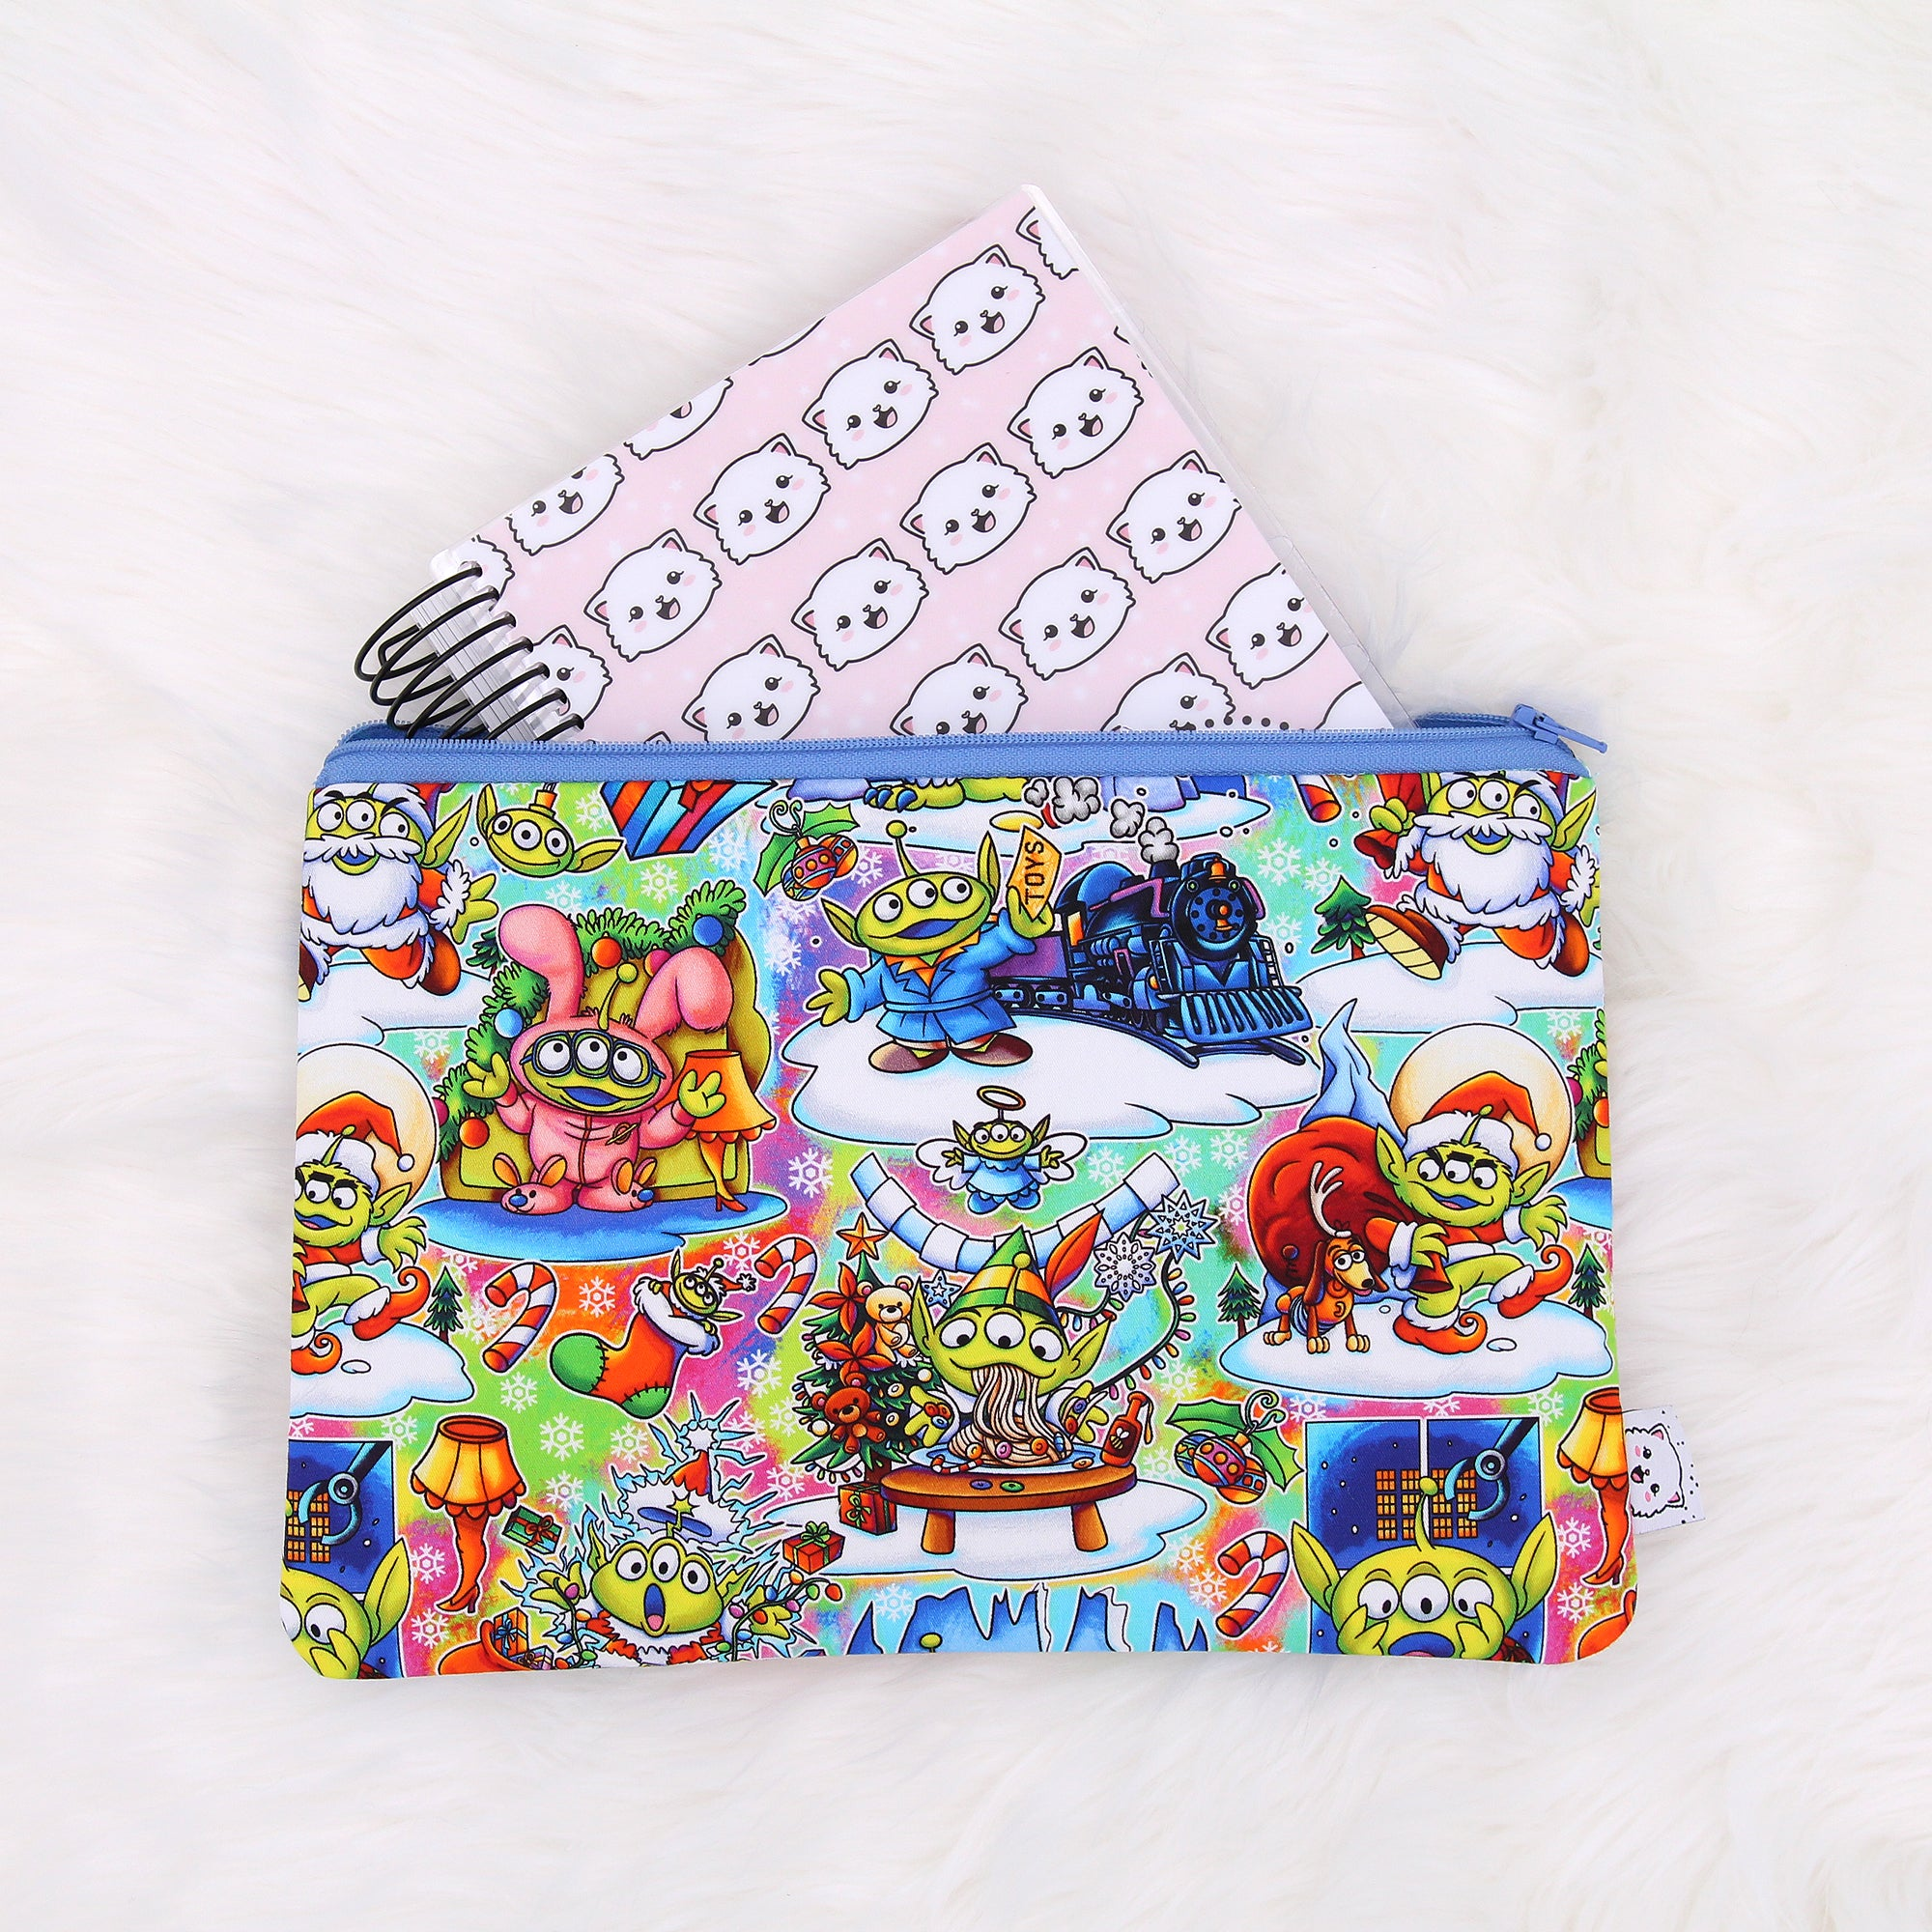 Holiday Toy Aliens Zipper Pouch - Print Pression B6 Spiral - B6 Planner Pouch - Pencil Pouch - Pen Pouch